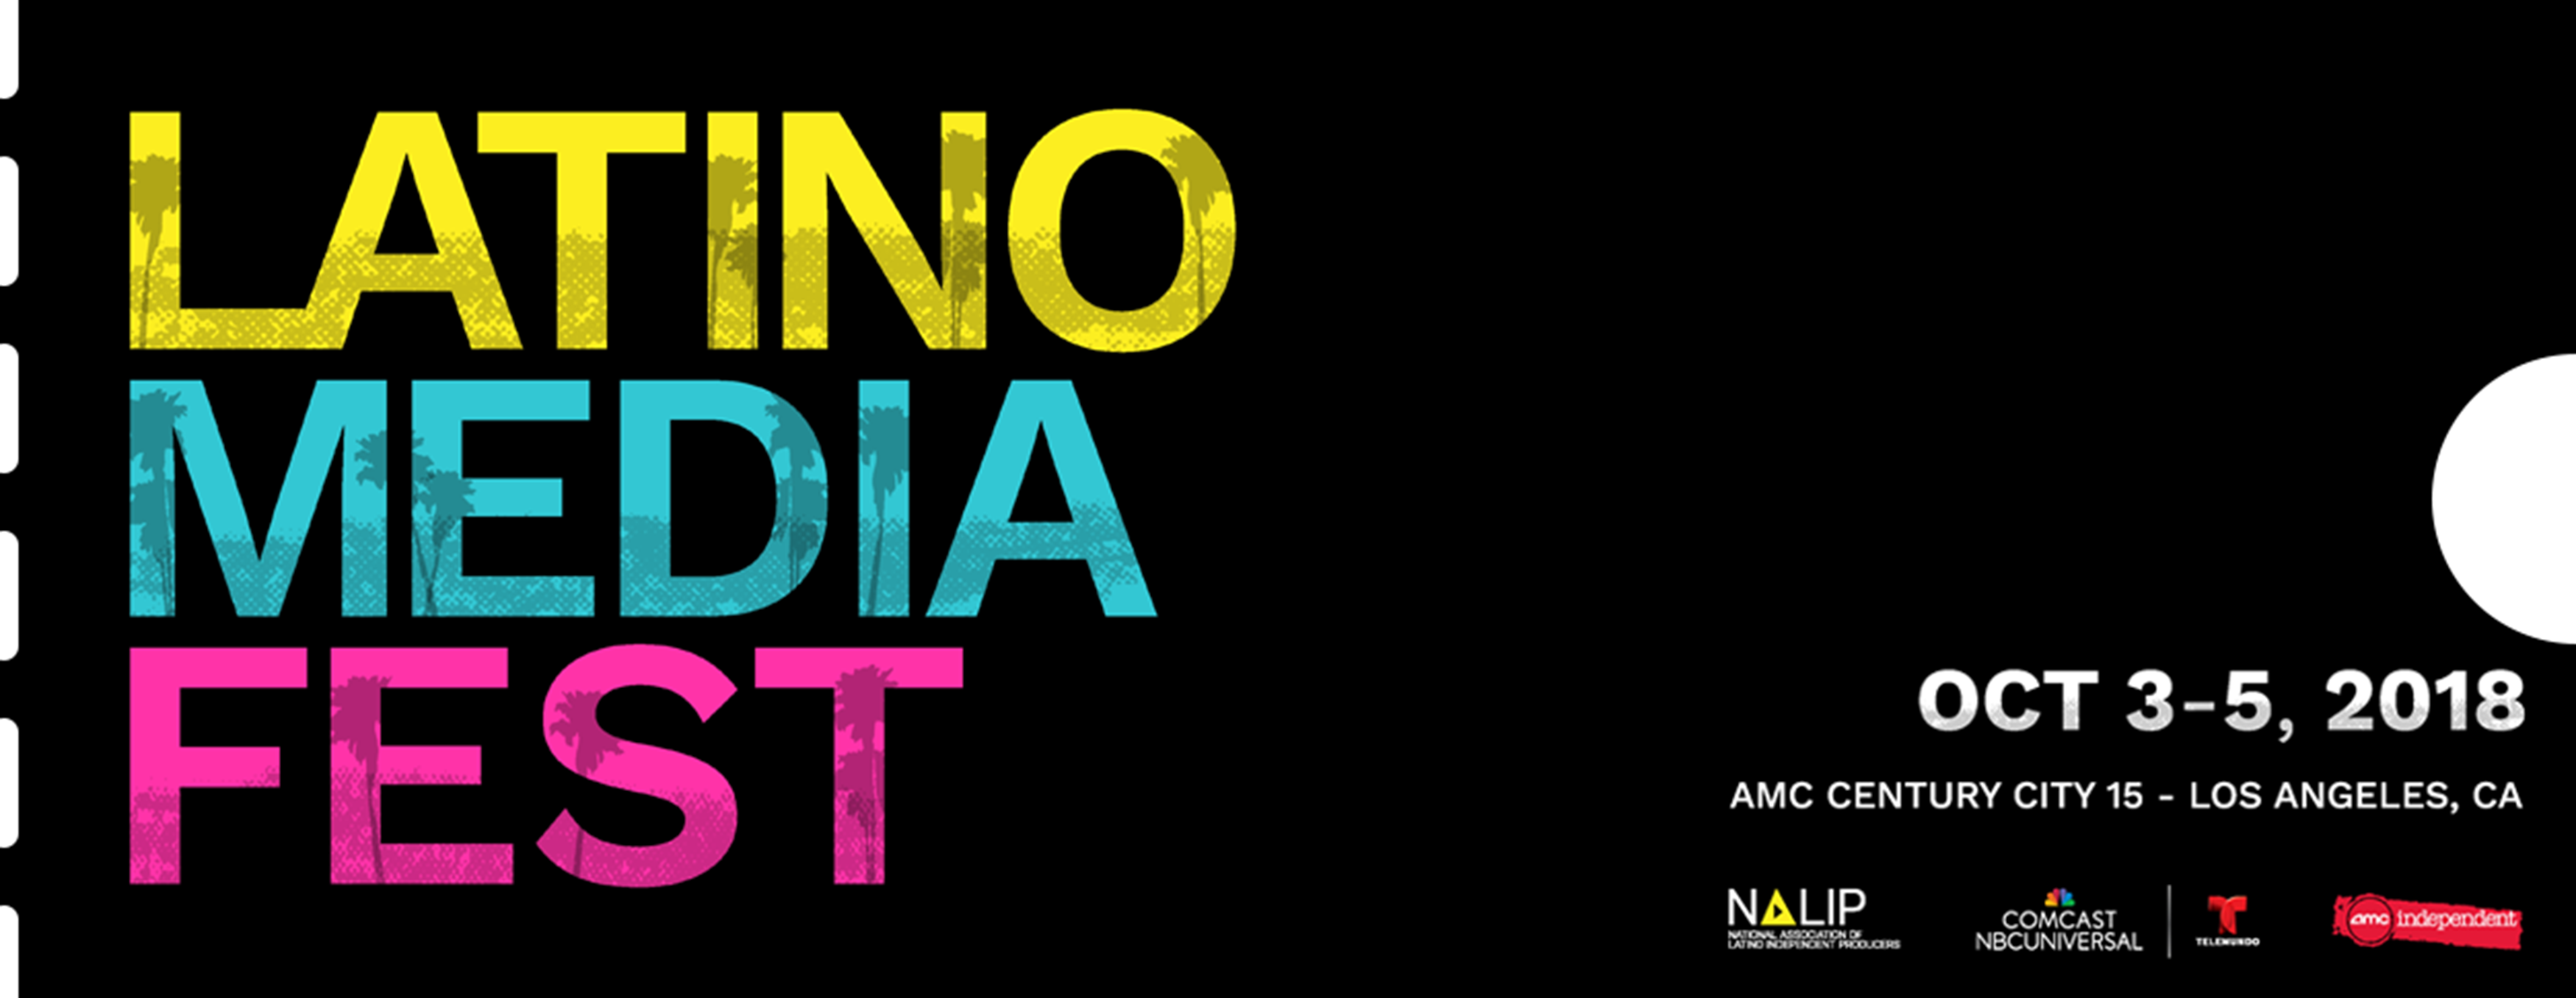 Latino Media Fest Oct 3-5, 2018 AMC Century City 15 - Los Angeles, CA